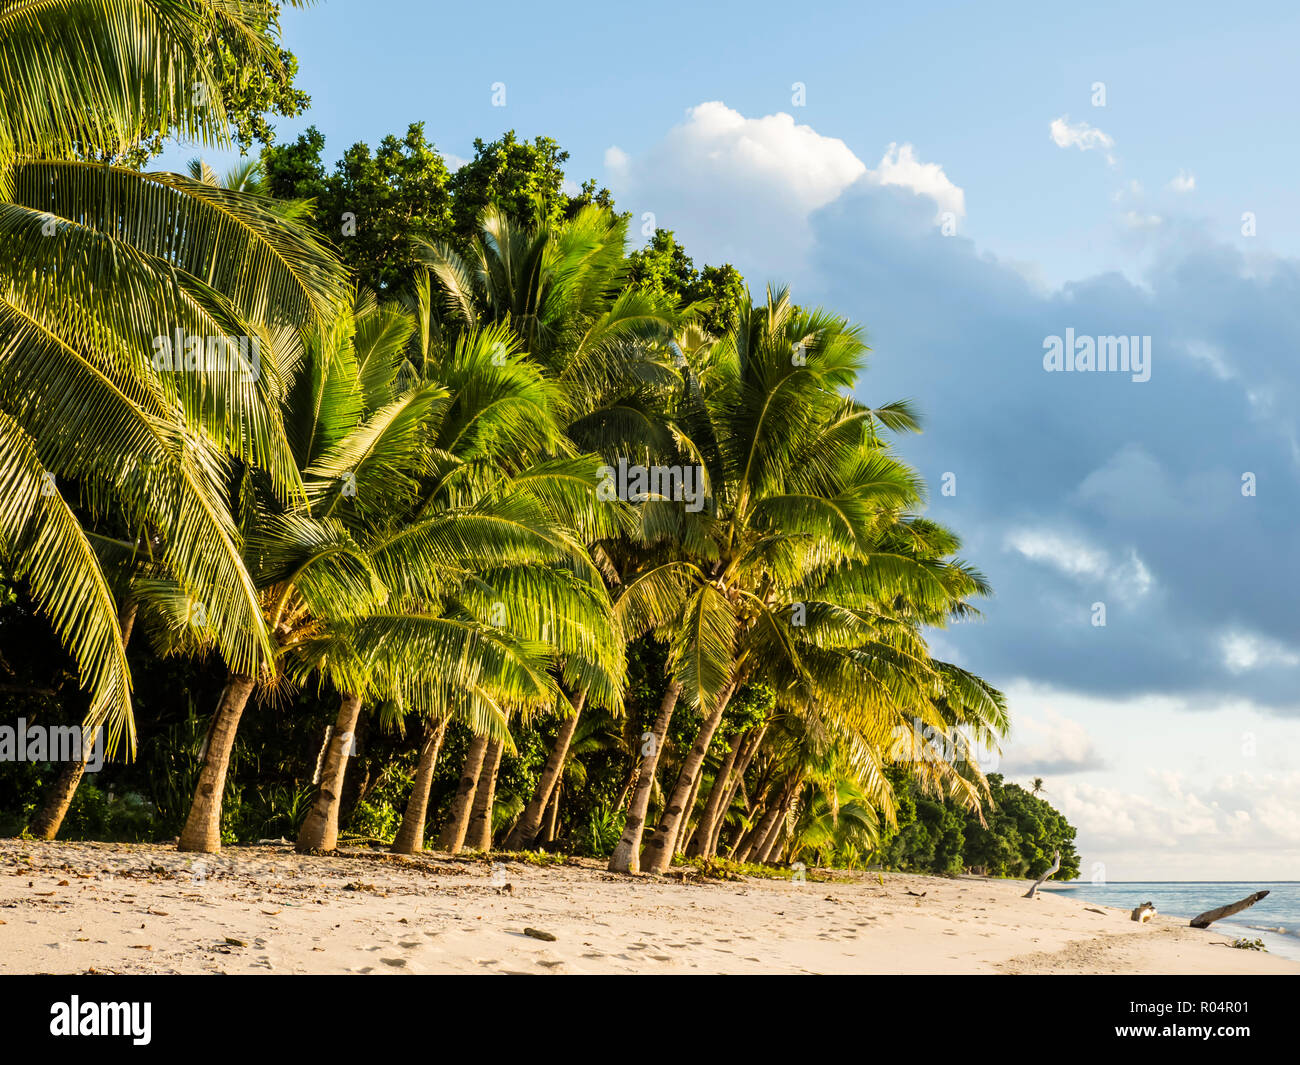 Coconut trees line the beach on the Island of Alofi, French Territory of Wallis and Futuna Islands, South Pacific Islands, Pacific - Stock Image